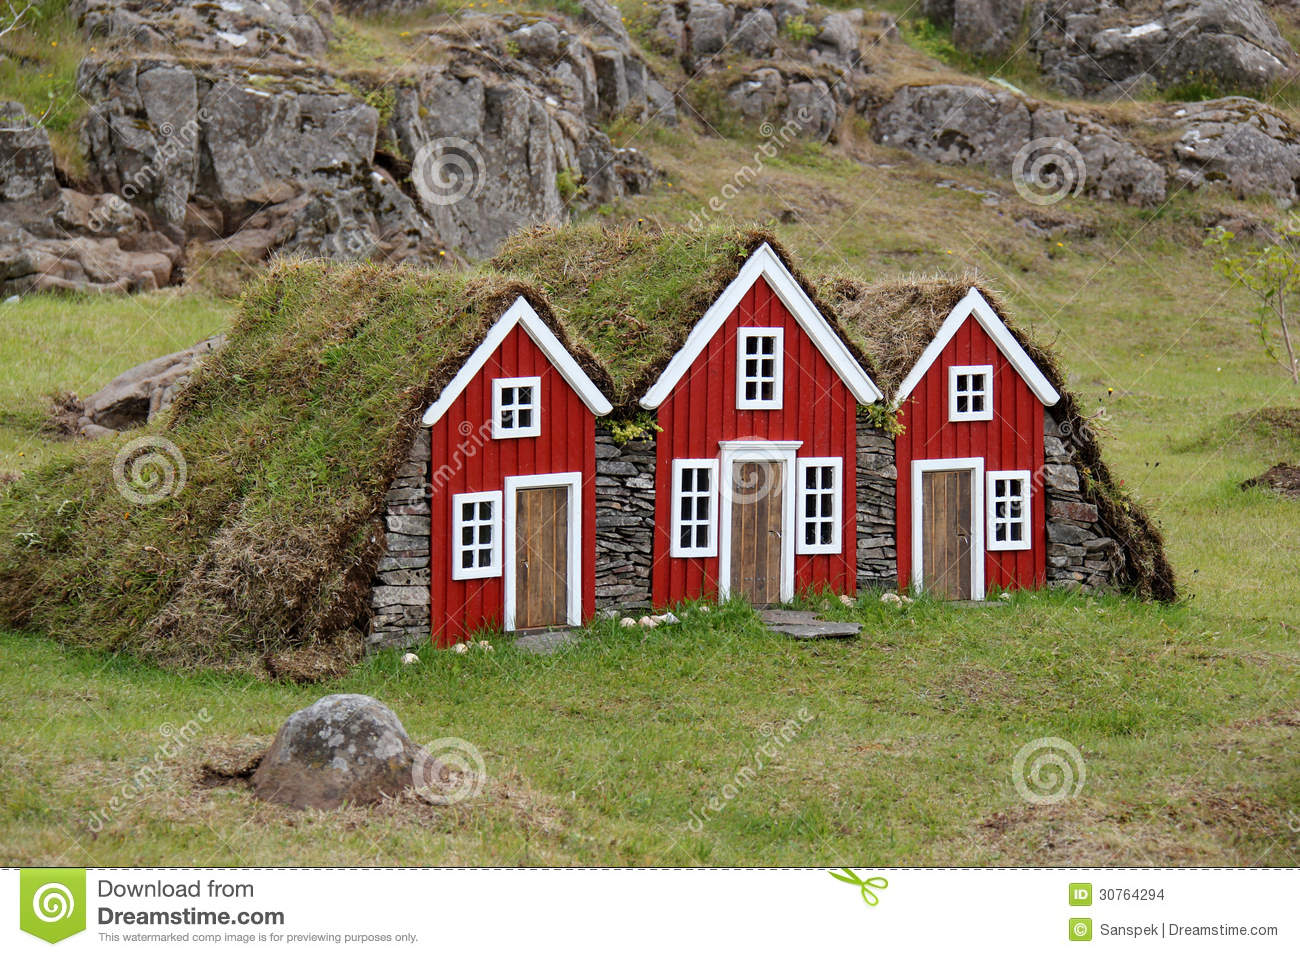 Playhouse Plans Step By Step Plans as well My expertmode beach house 13 likewise Stock Image Red Flock Wallpaper Pattern Image13013091 additionally Stock Images Turf House Elf Iceland Decorative Small Home Imitation Seen Everywhere Image30764294 as well Pioneer Log Homes. on play house plans and designs